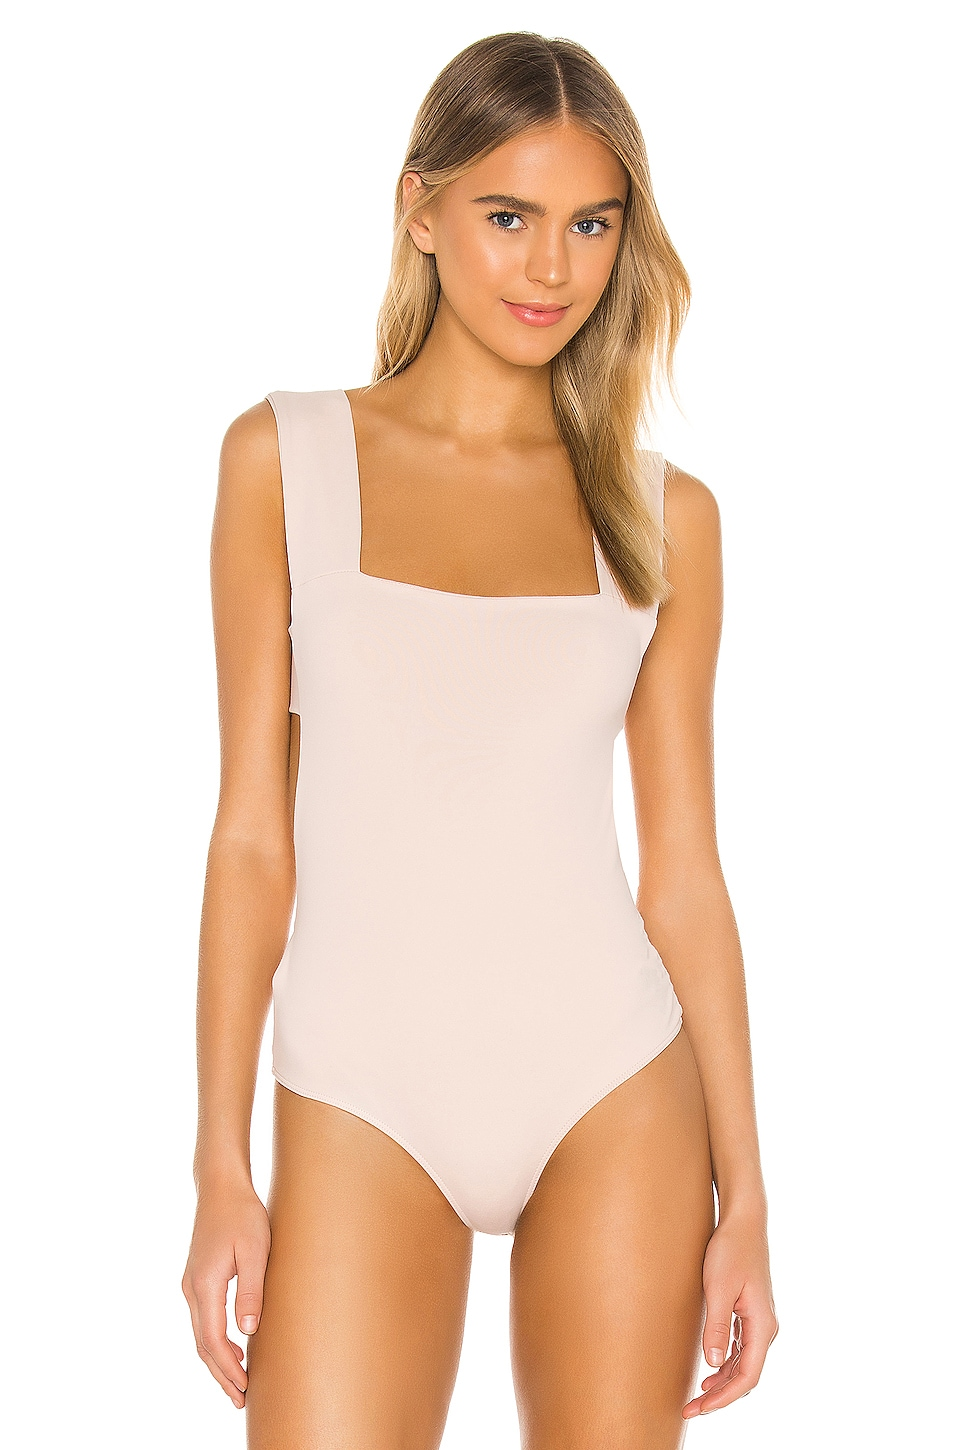 Oh Shes Strappy Bodysuit, view 2, click to view large image.